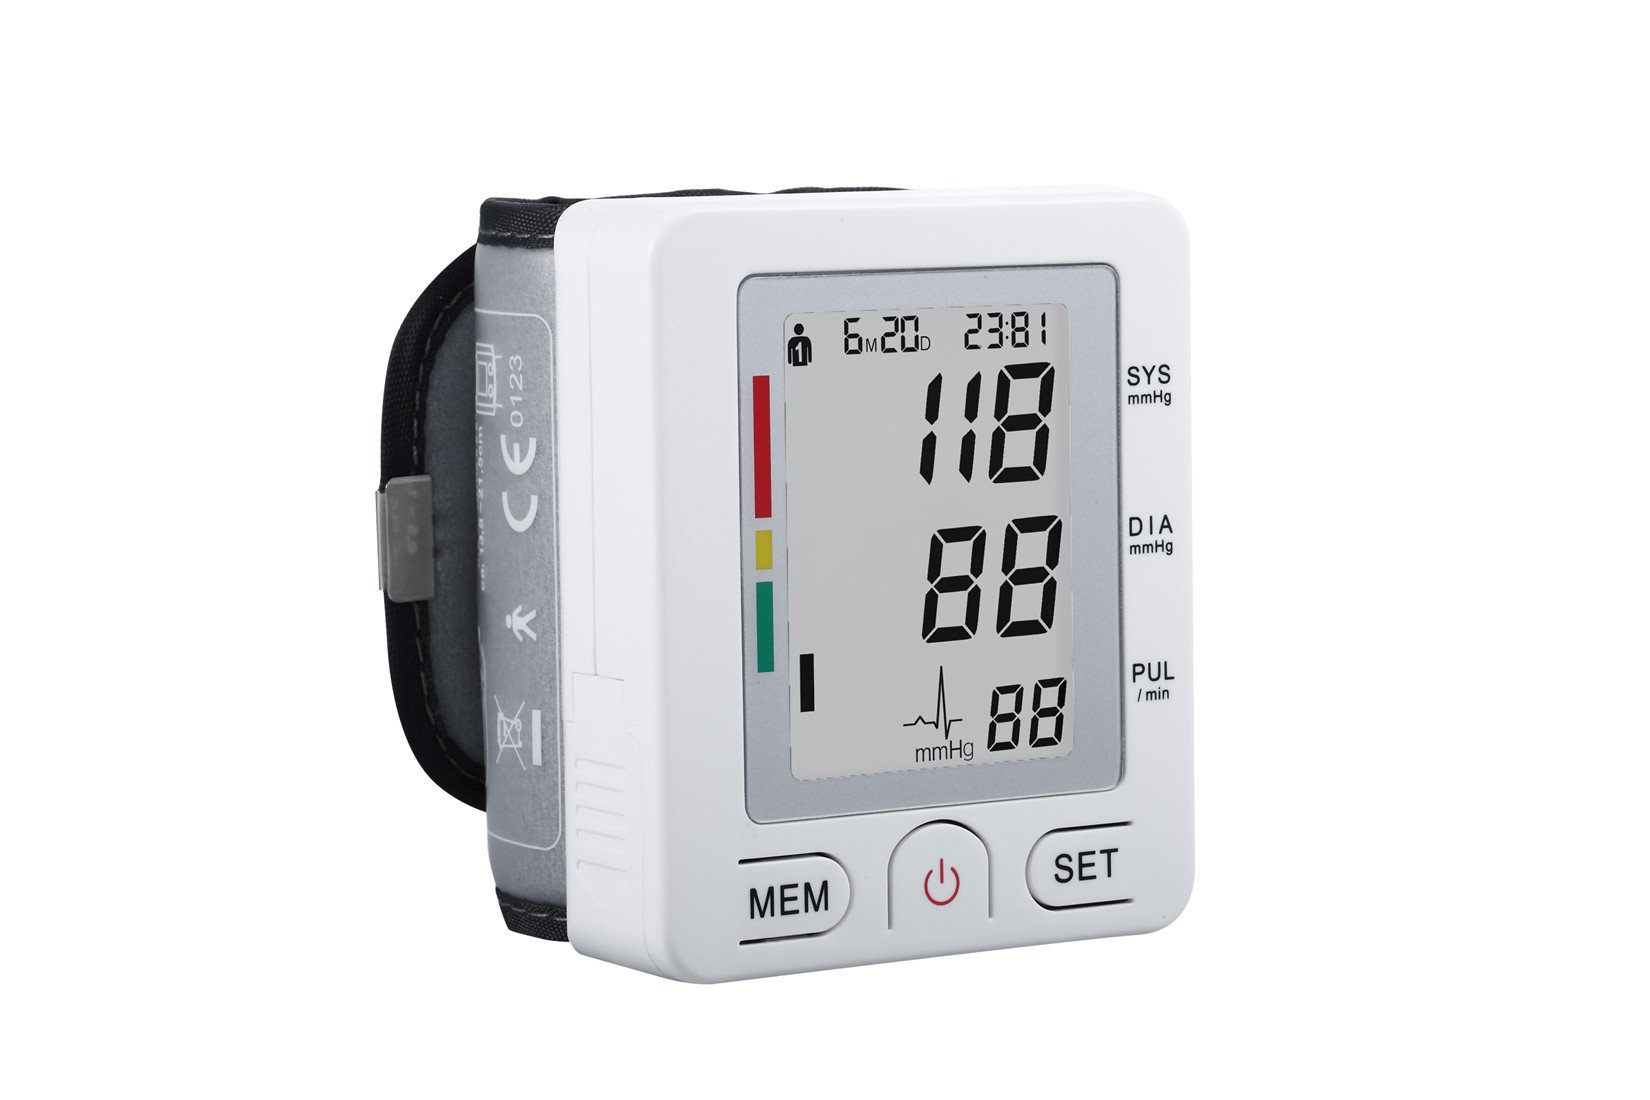 Fam-health Automatic LCD Digital Wrist Monitor with Heart Rate Detection-90 Groups Memory-Large Cuff Adjusts-Time and Date with Memory Store Last Readings, FDA Certified [2018 New Version] (White)